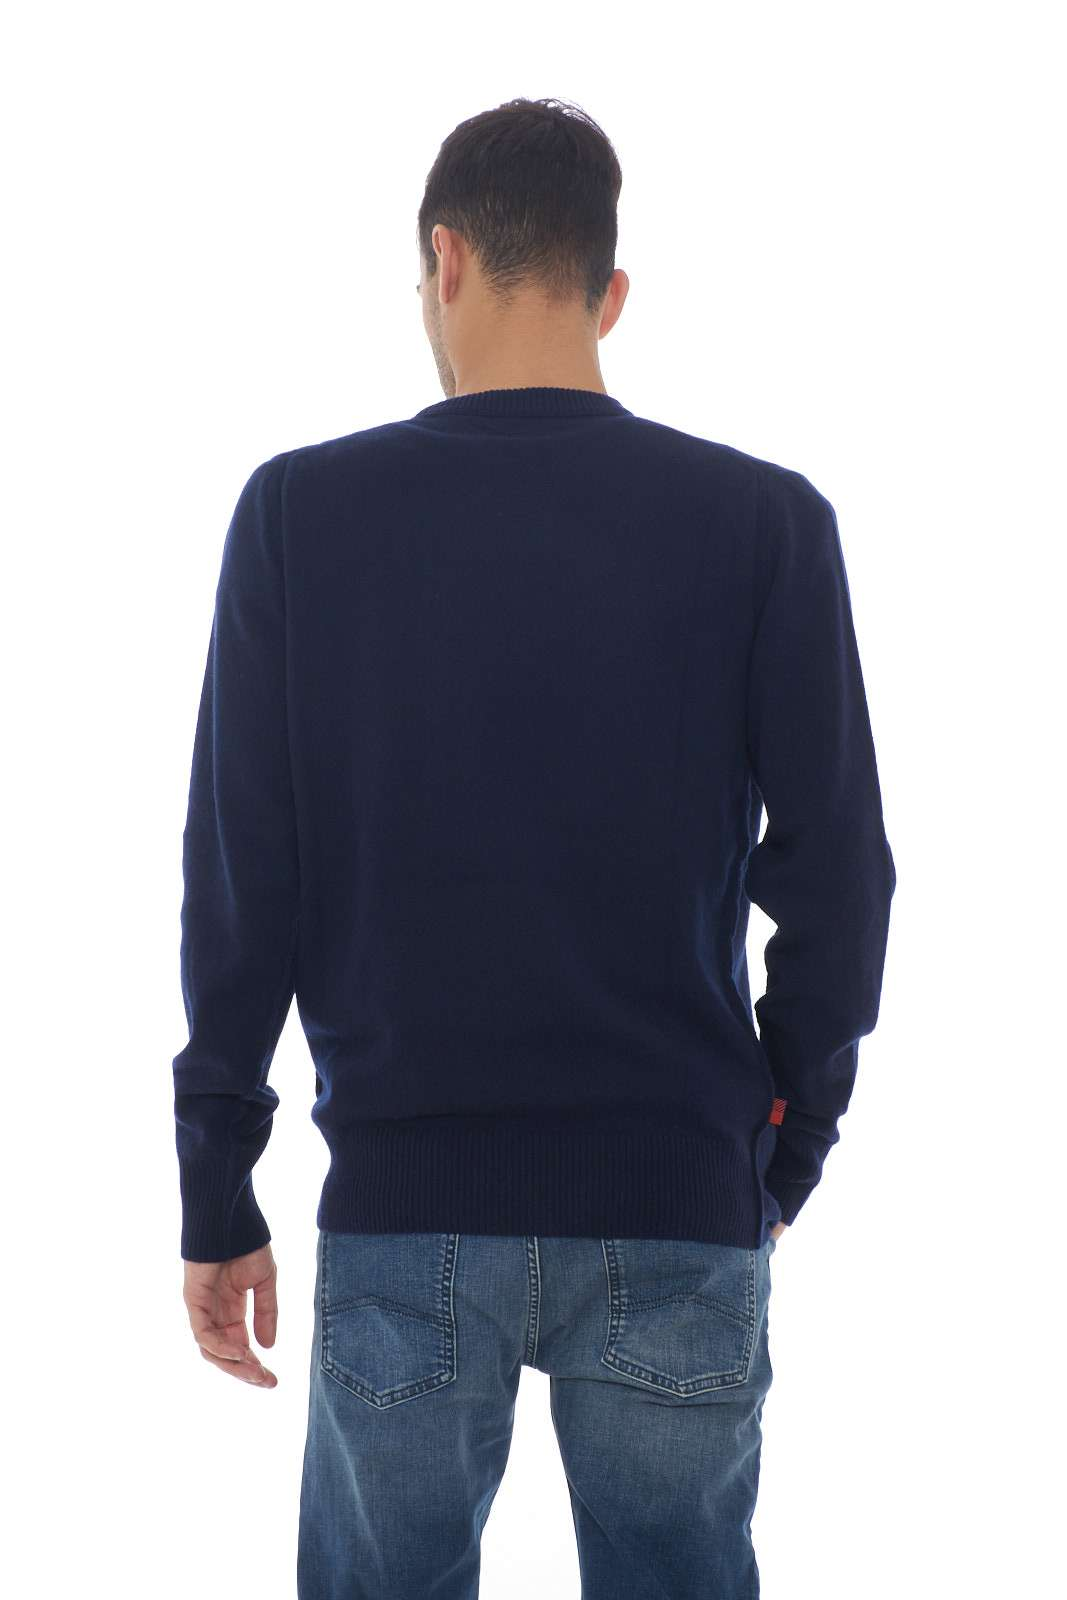 https://www.parmax.com/media/catalog/product/a/i/AI-outlet_parmax-maglia-uomo-Woolrich-WOMAG1884-C.jpg